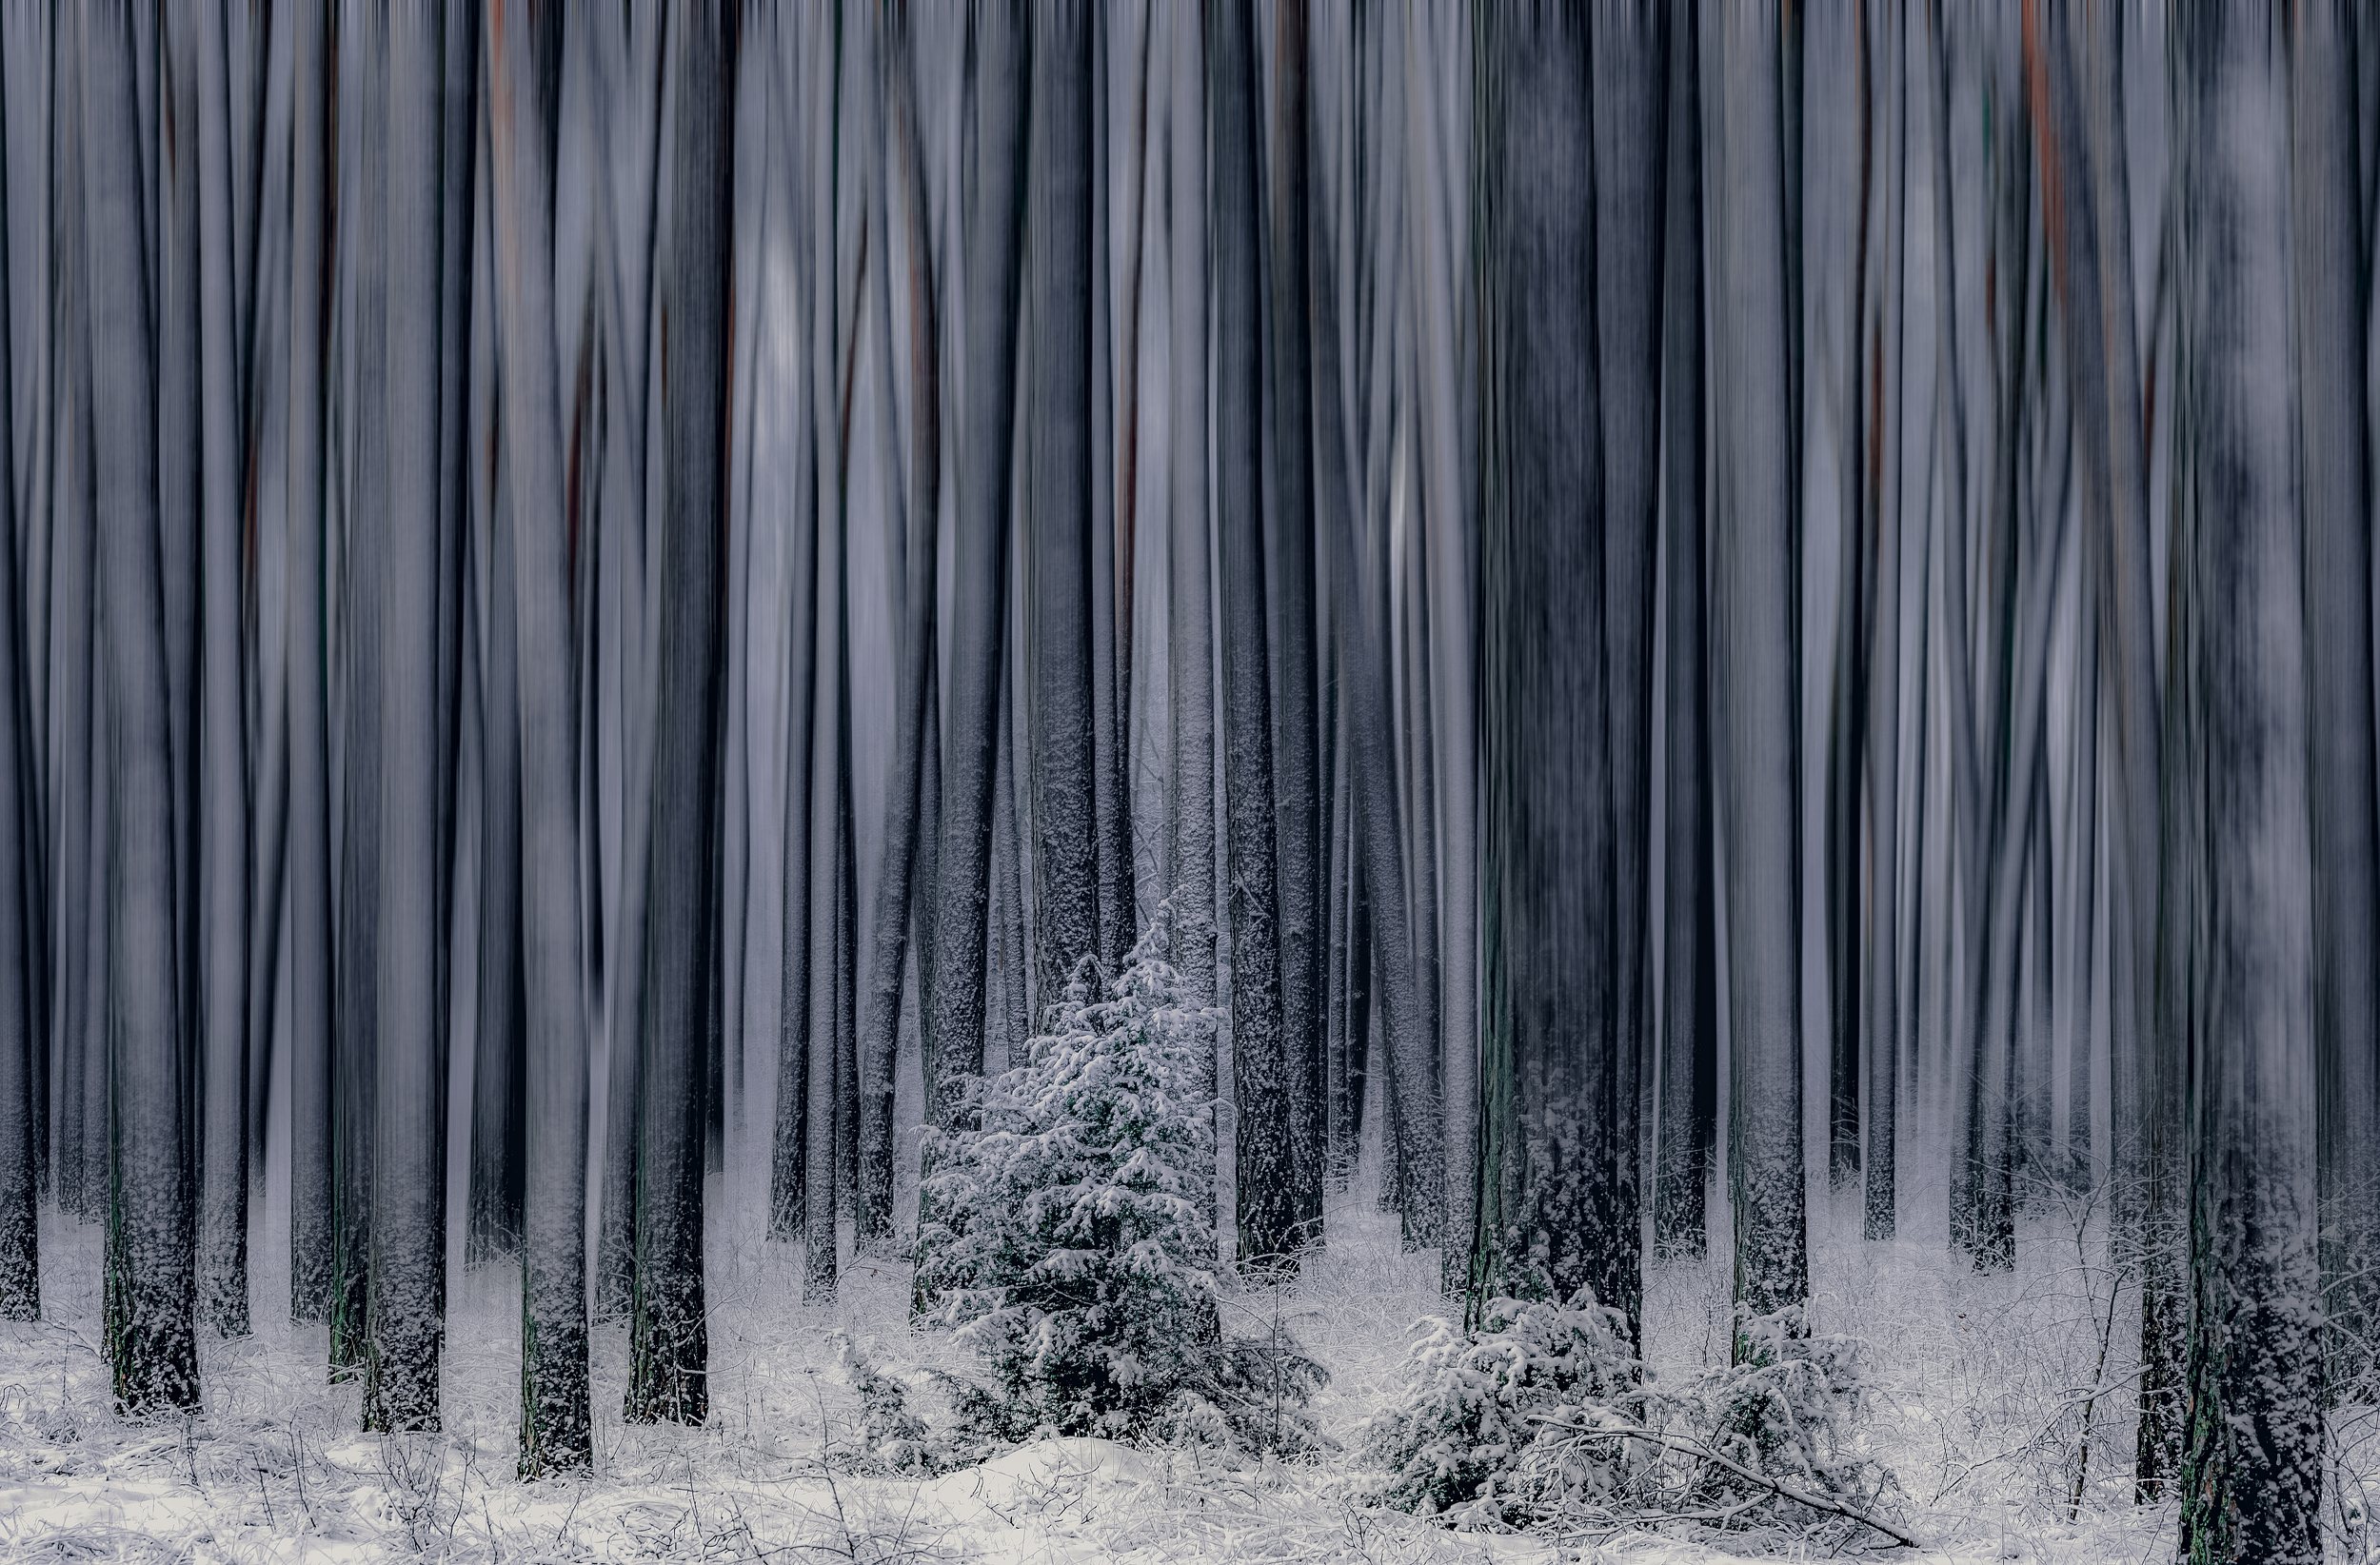 Forest  Nature  No People  Blurry Trees  Nikon  Winter  Snow  Morning  Trees, Tollas Krzysztof